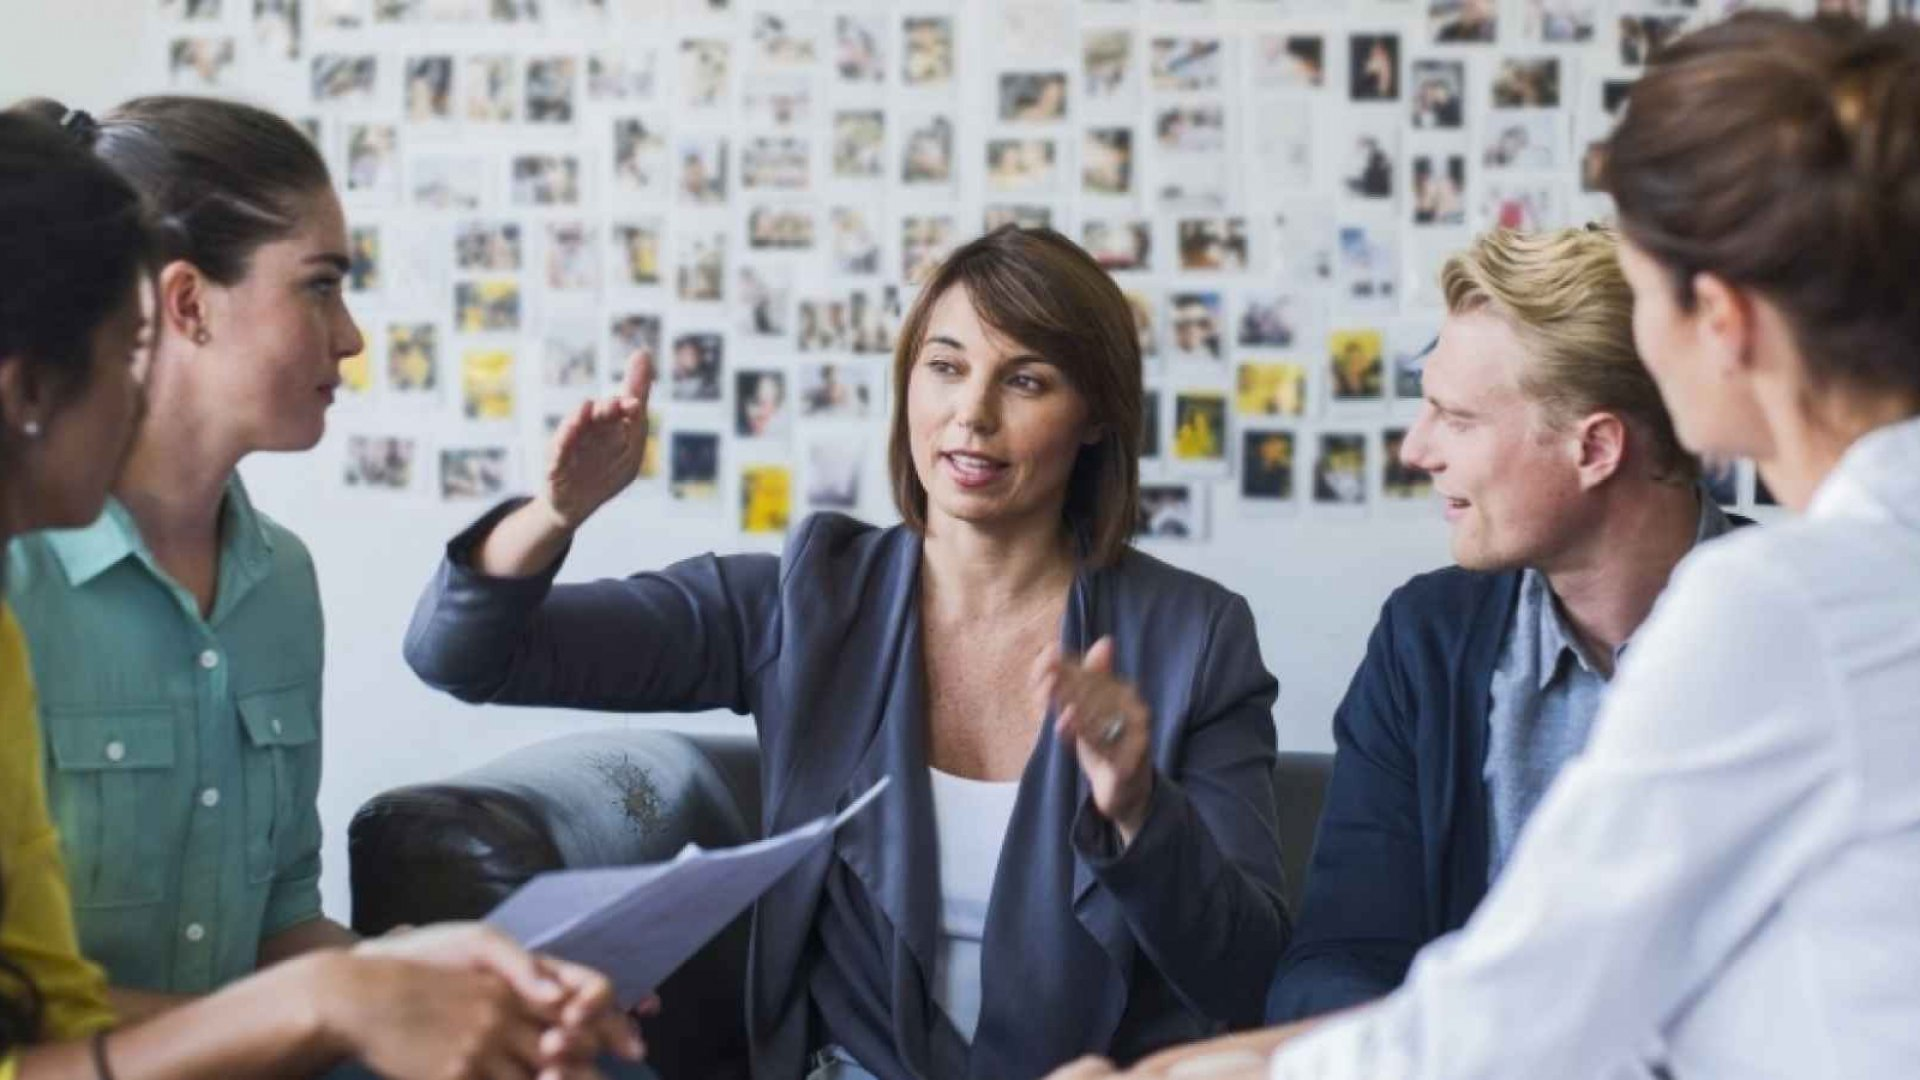 The One Thing Every Authentic Leader Knows